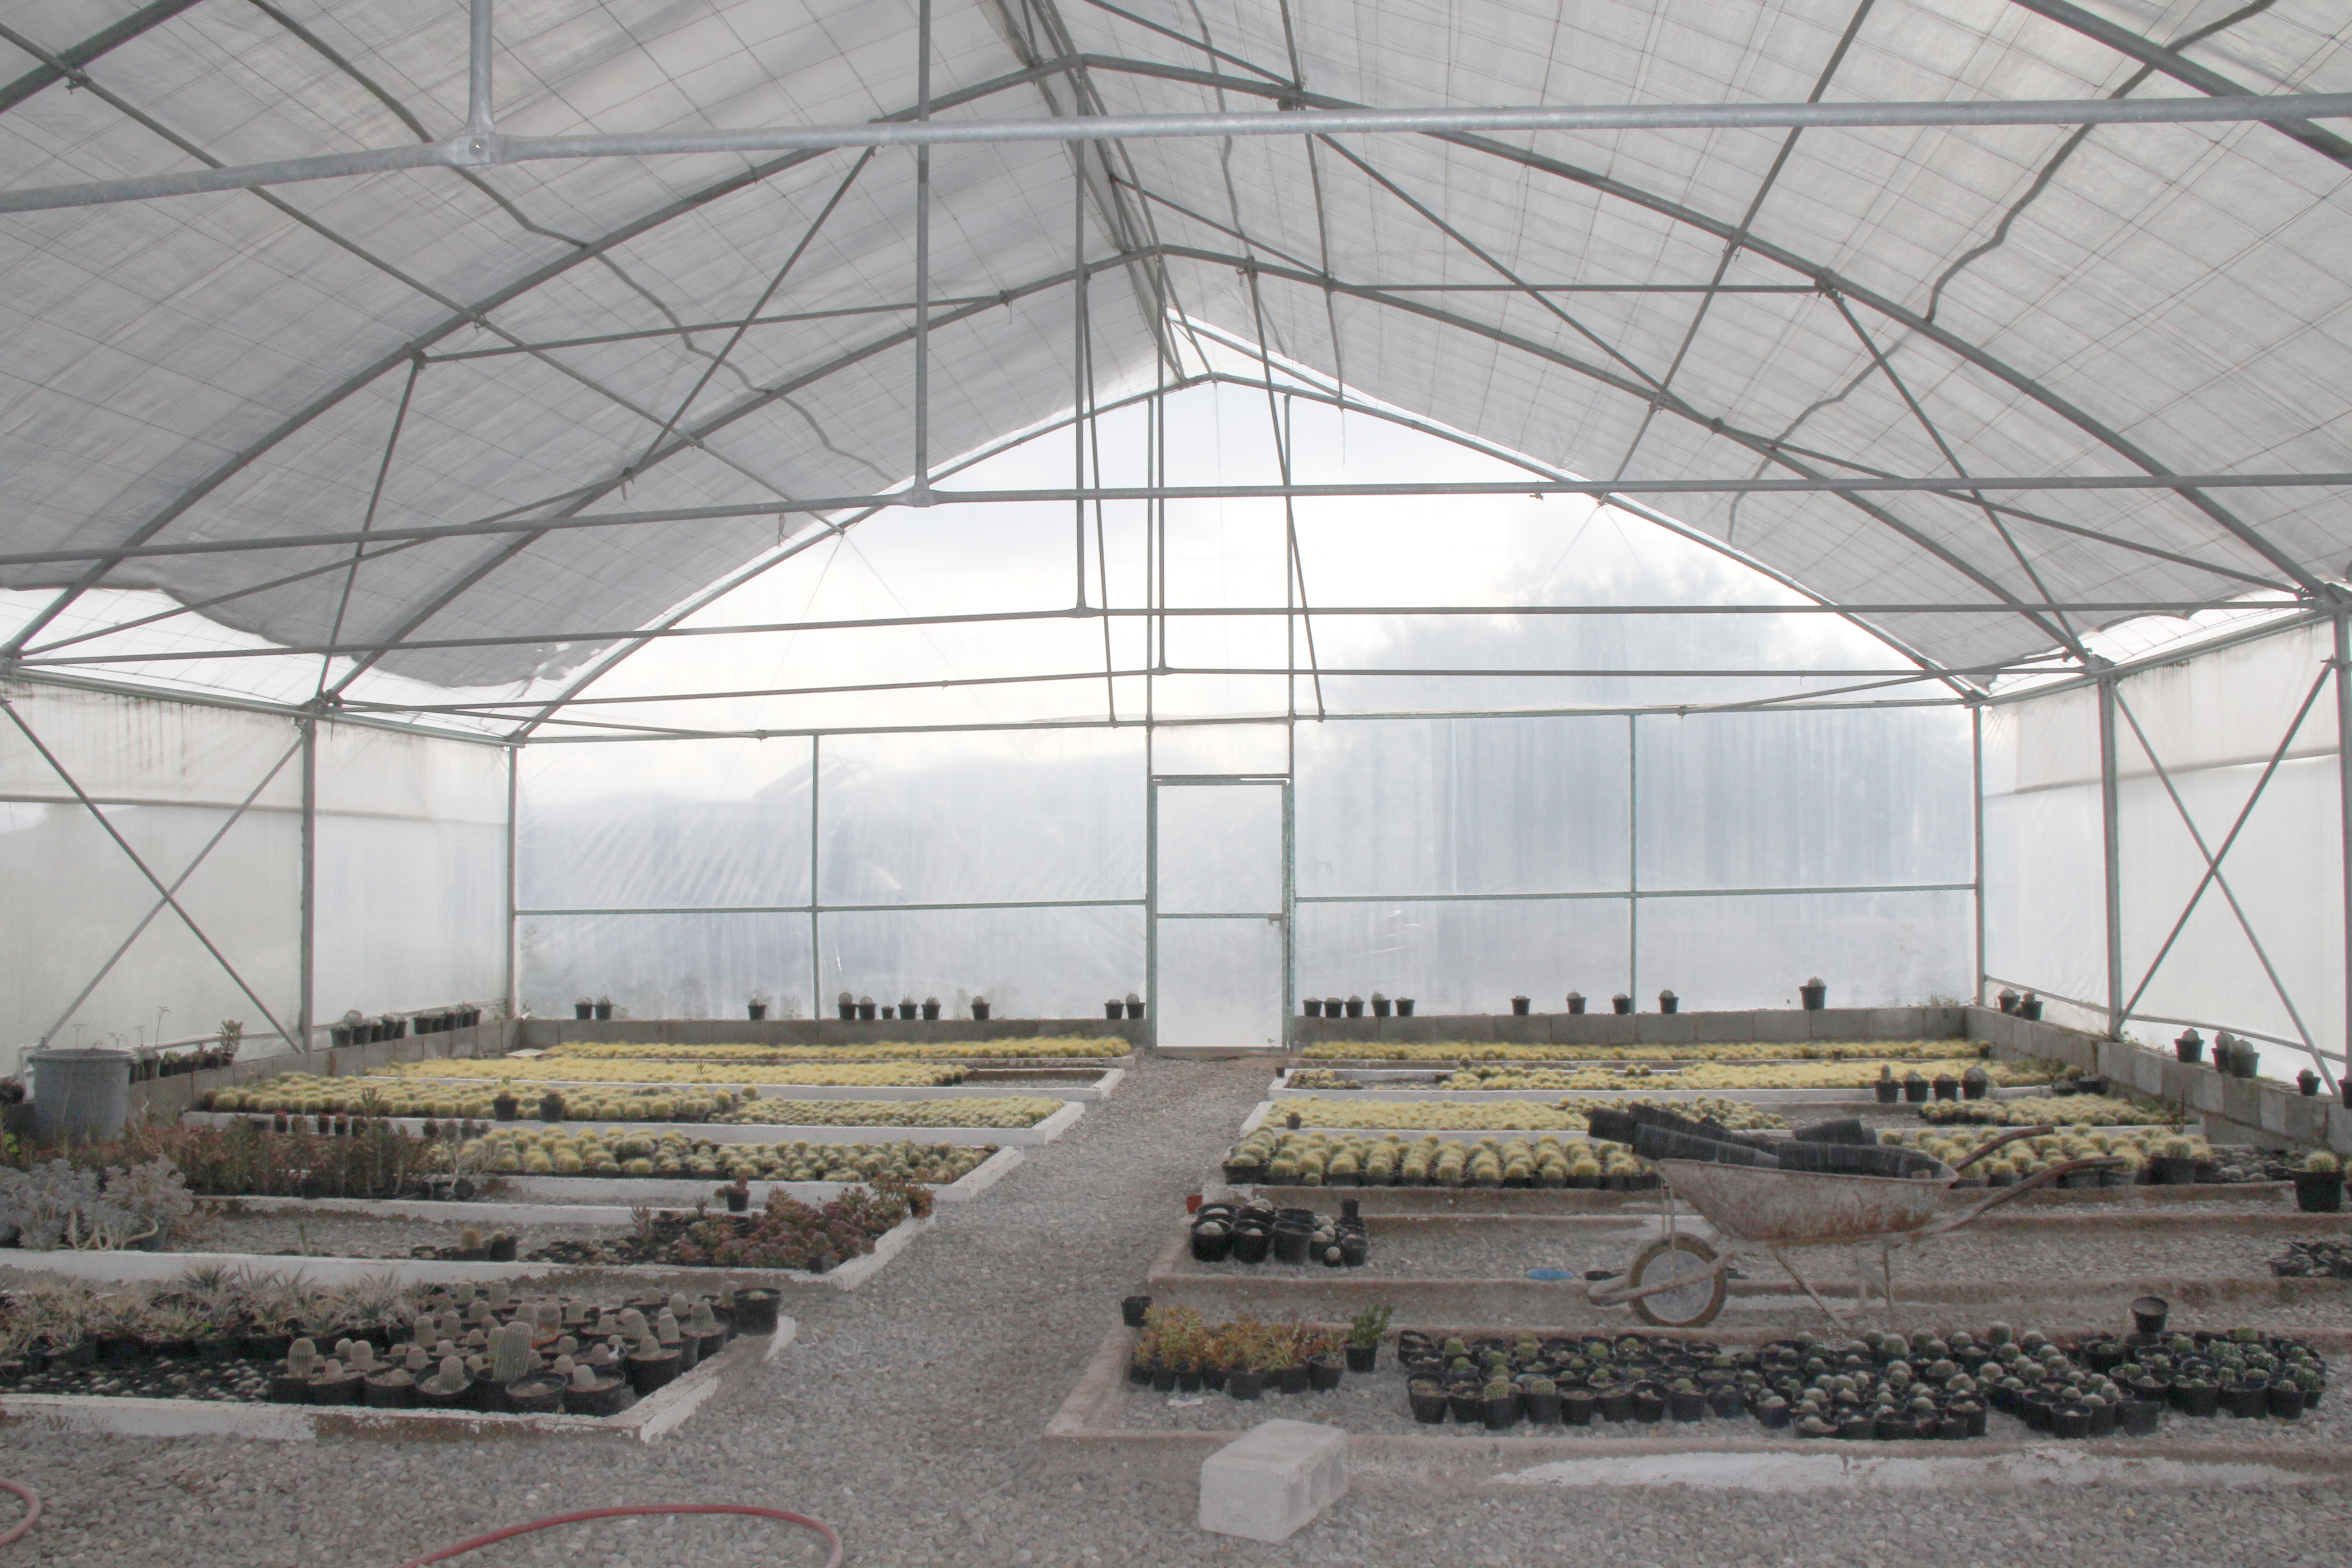 More than 100 hundred species of cacti are grown in the greenhouse. Photo by Christian Meléndez-López/CRS